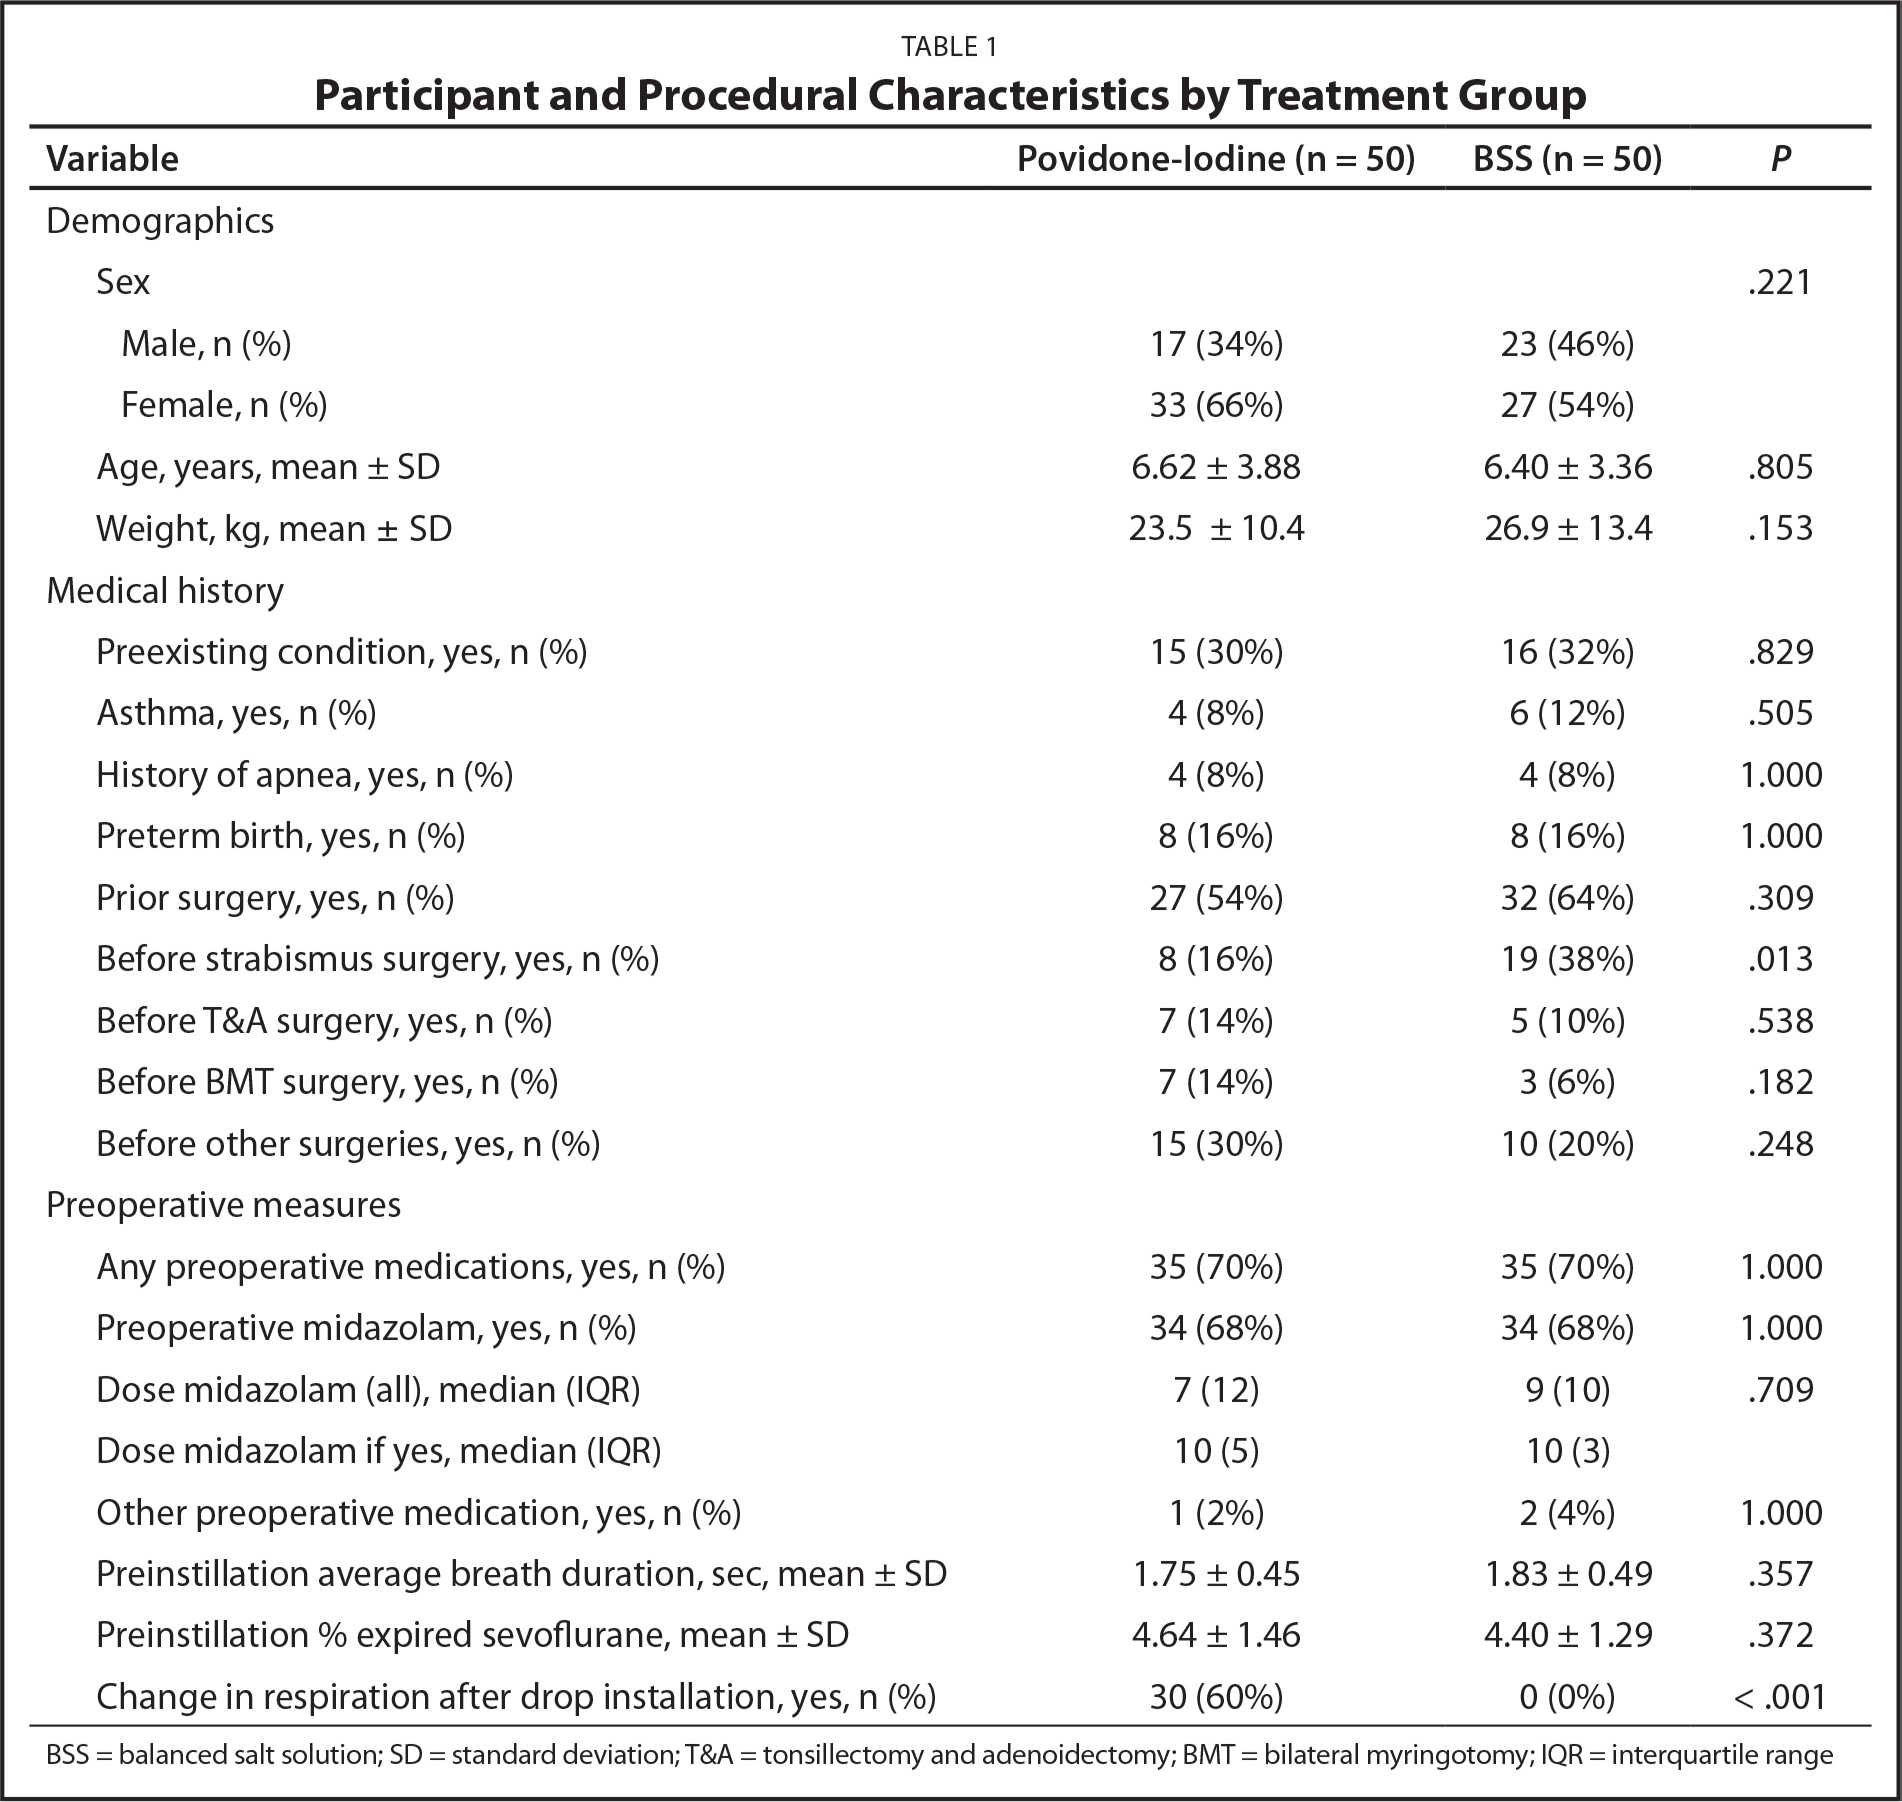 Participant and Procedural Characteristics by Treatment Group